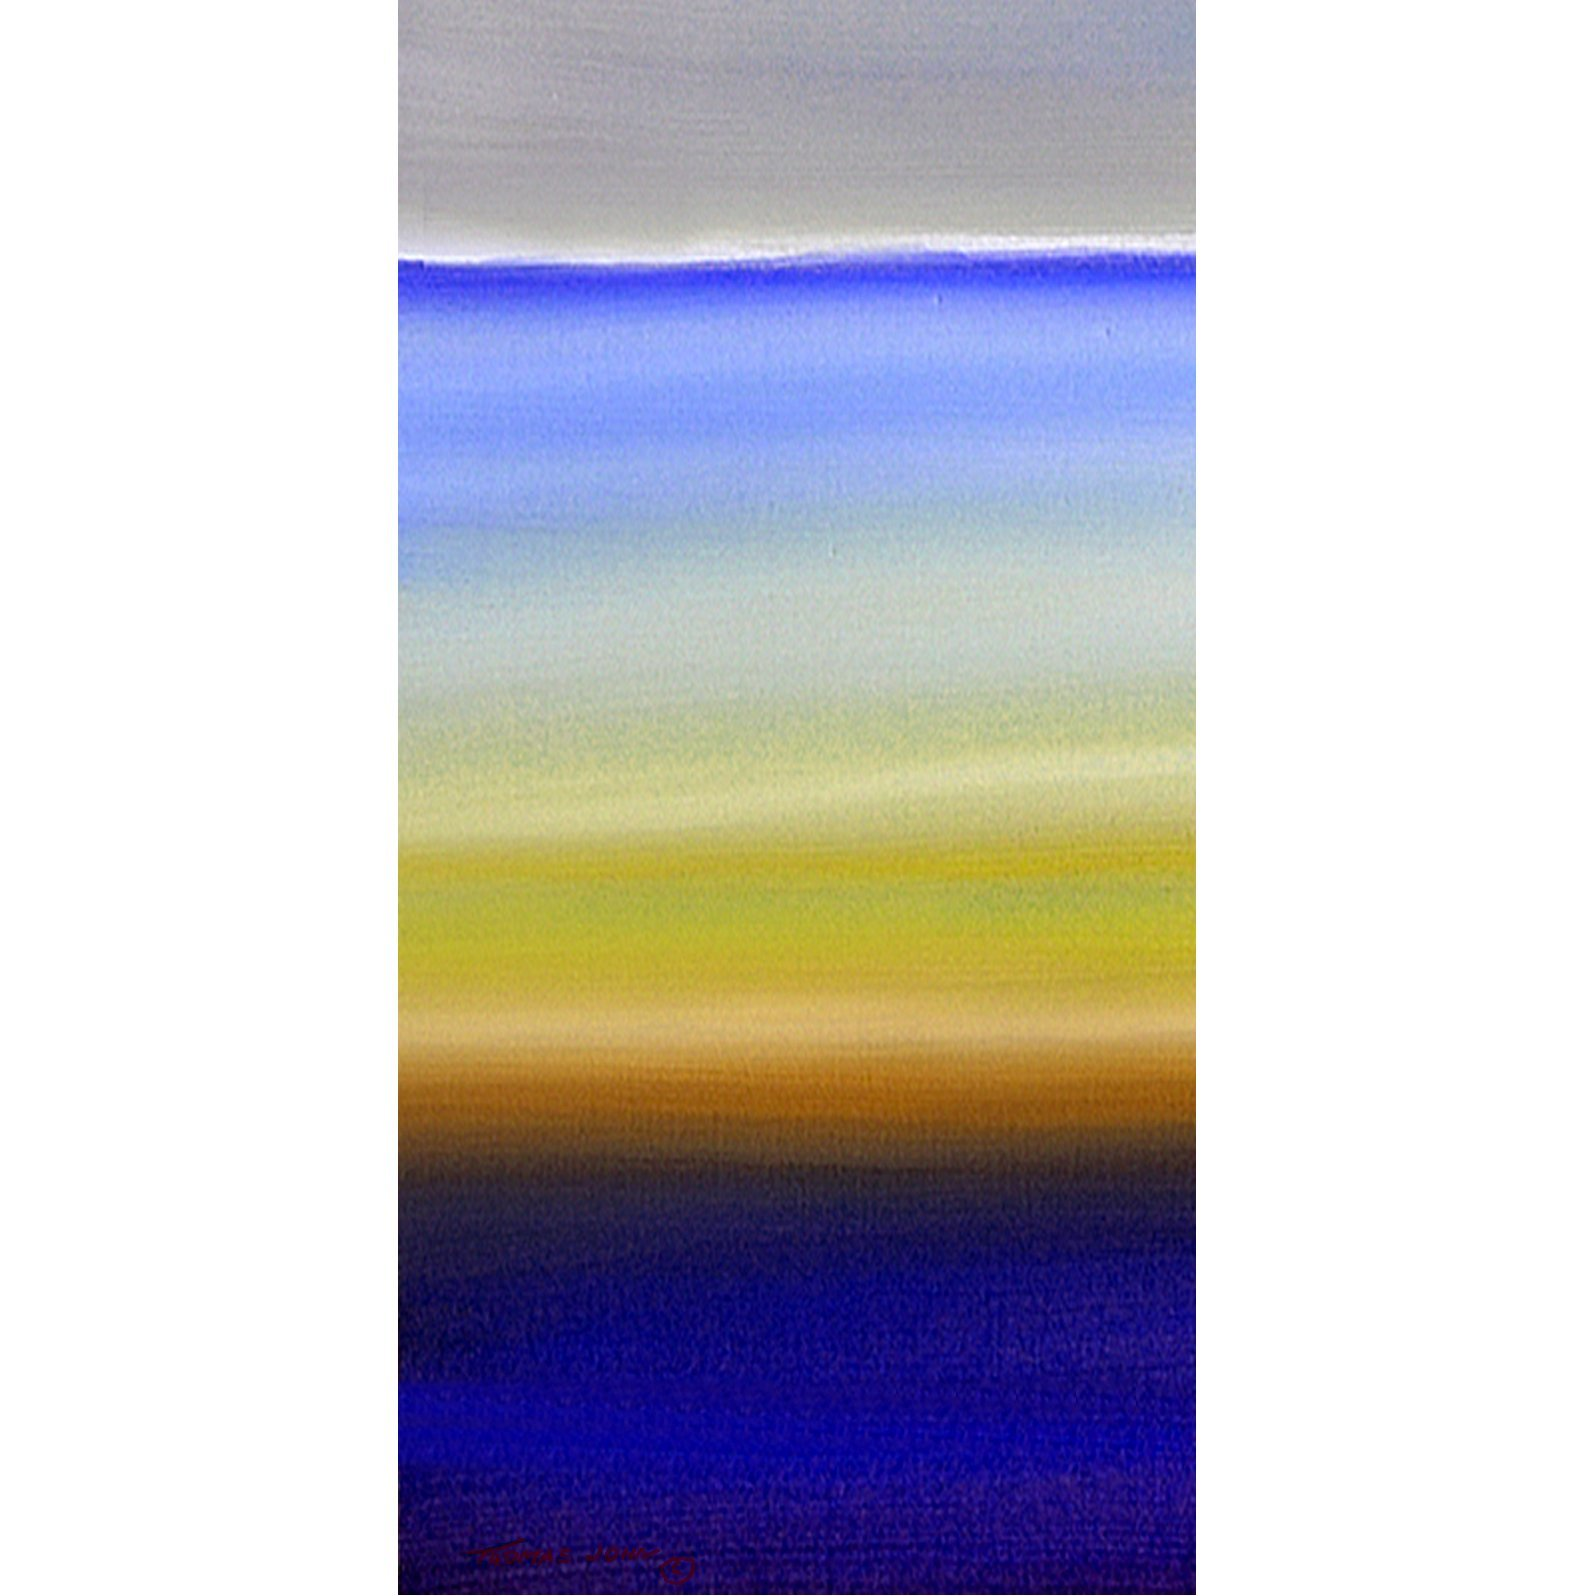 Thomas Gress: 'blue sea sunset', 2019 Acrylic Painting, Seascape. Artist Description: OCEAN, BLUE PAINTINGS, WATER SCENES, SKY, SUNSETS, SEA ART, BOATS, BIRDS, LARGE ART, BIG PAINTINGS, CANVAS ART, WIRE, WOOD, SUN, BEACH ART, ...